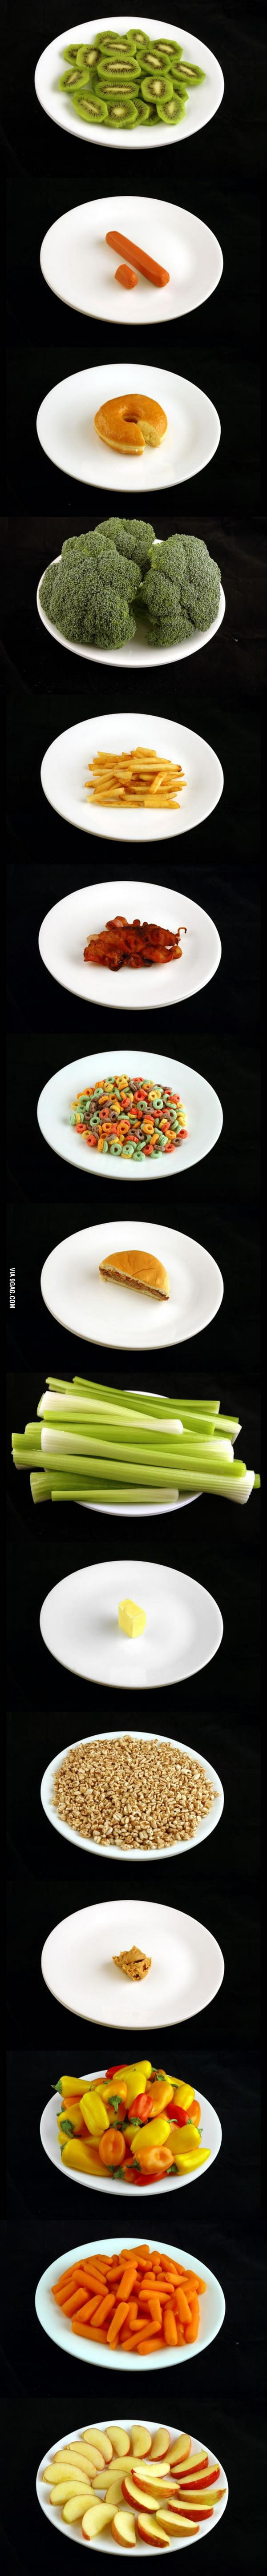 What 200 calories looks like.